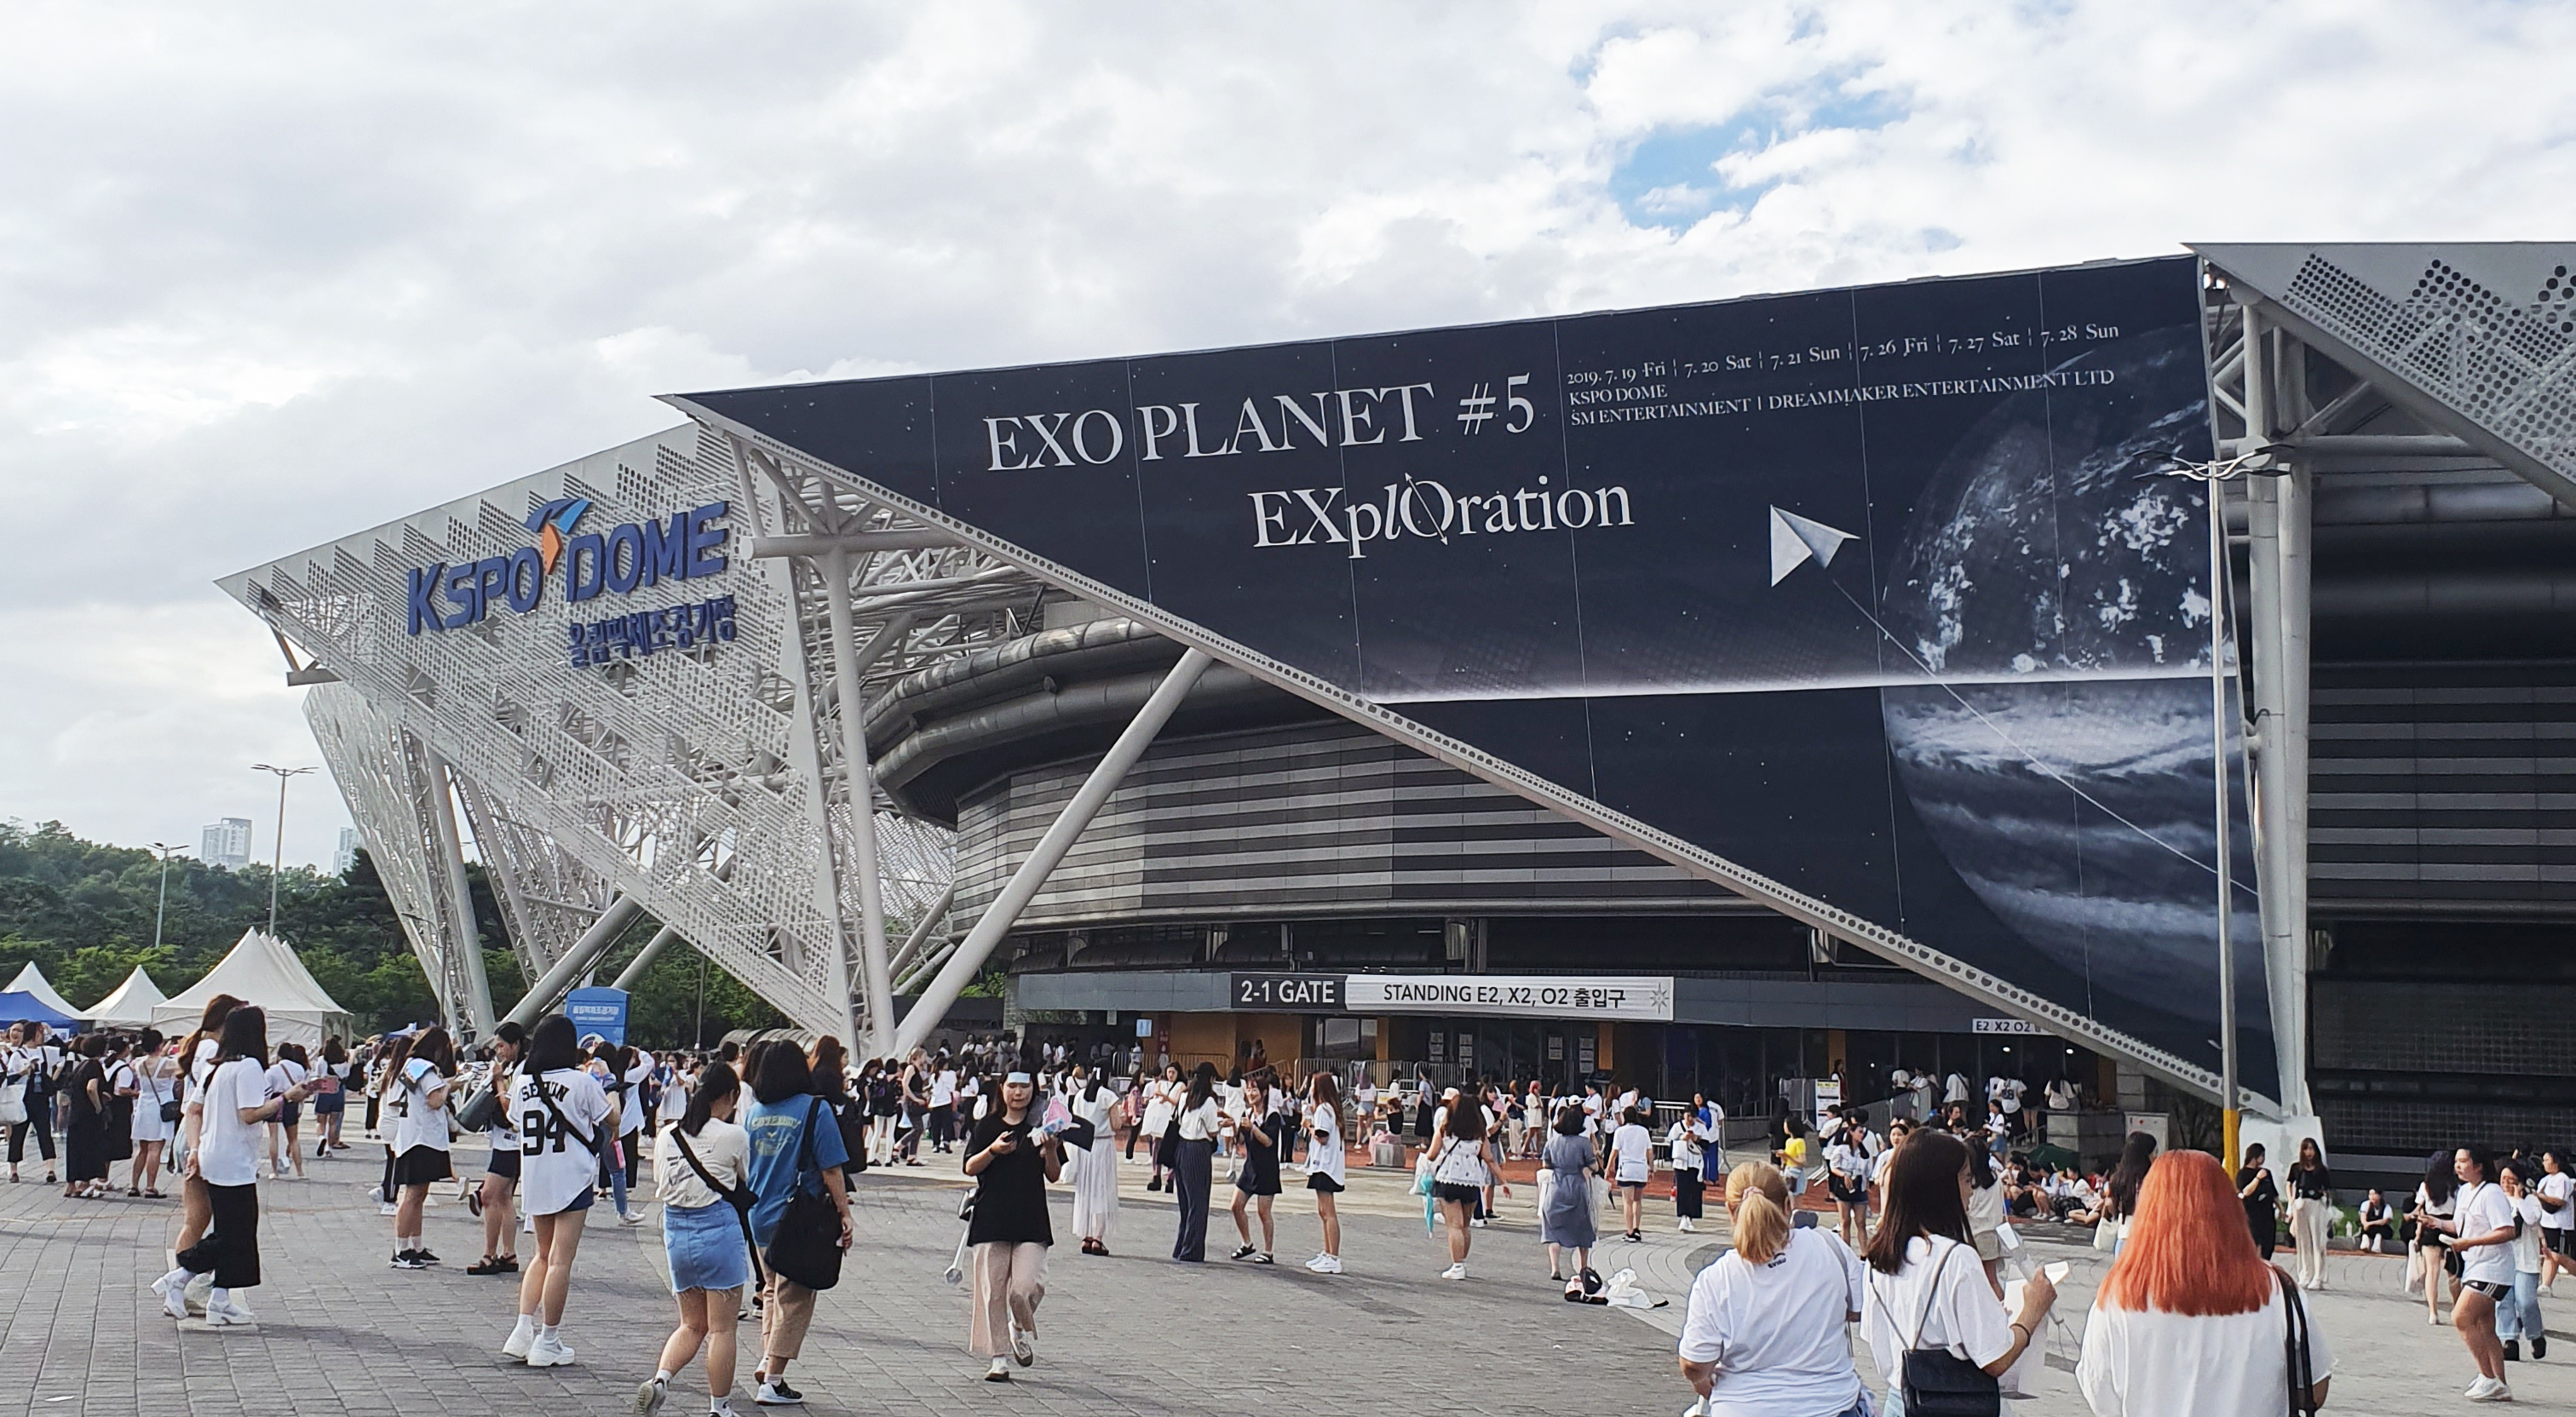 Outside of the EXO's 'EXO PLANET#5 - EXplOration' concert venue (Photo Credit=anonymous EXO fan)